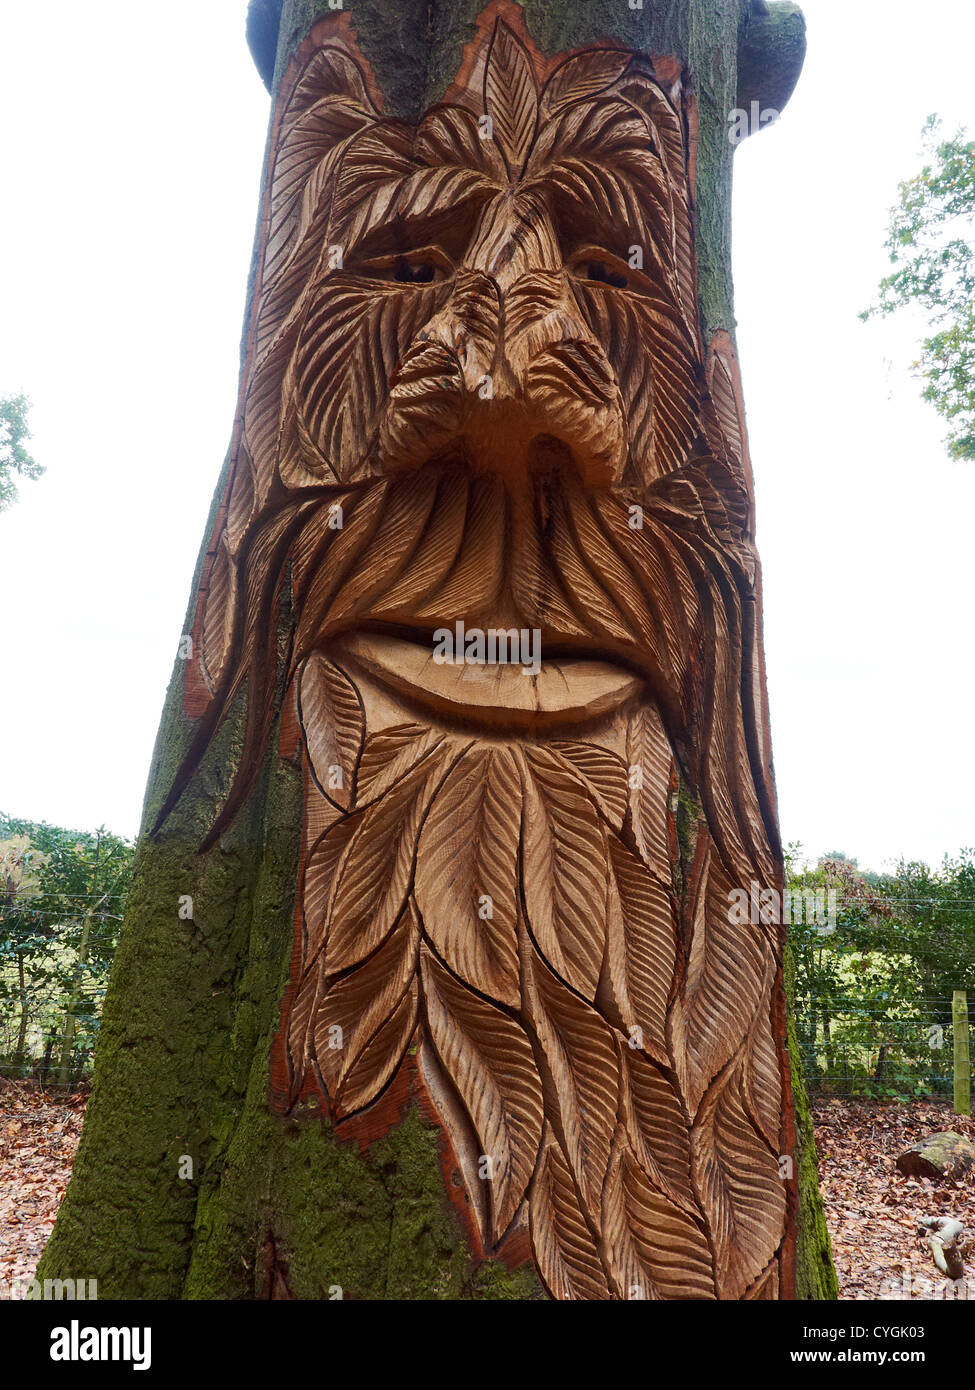 Old man face carved in tree delamere forest cheshire uk